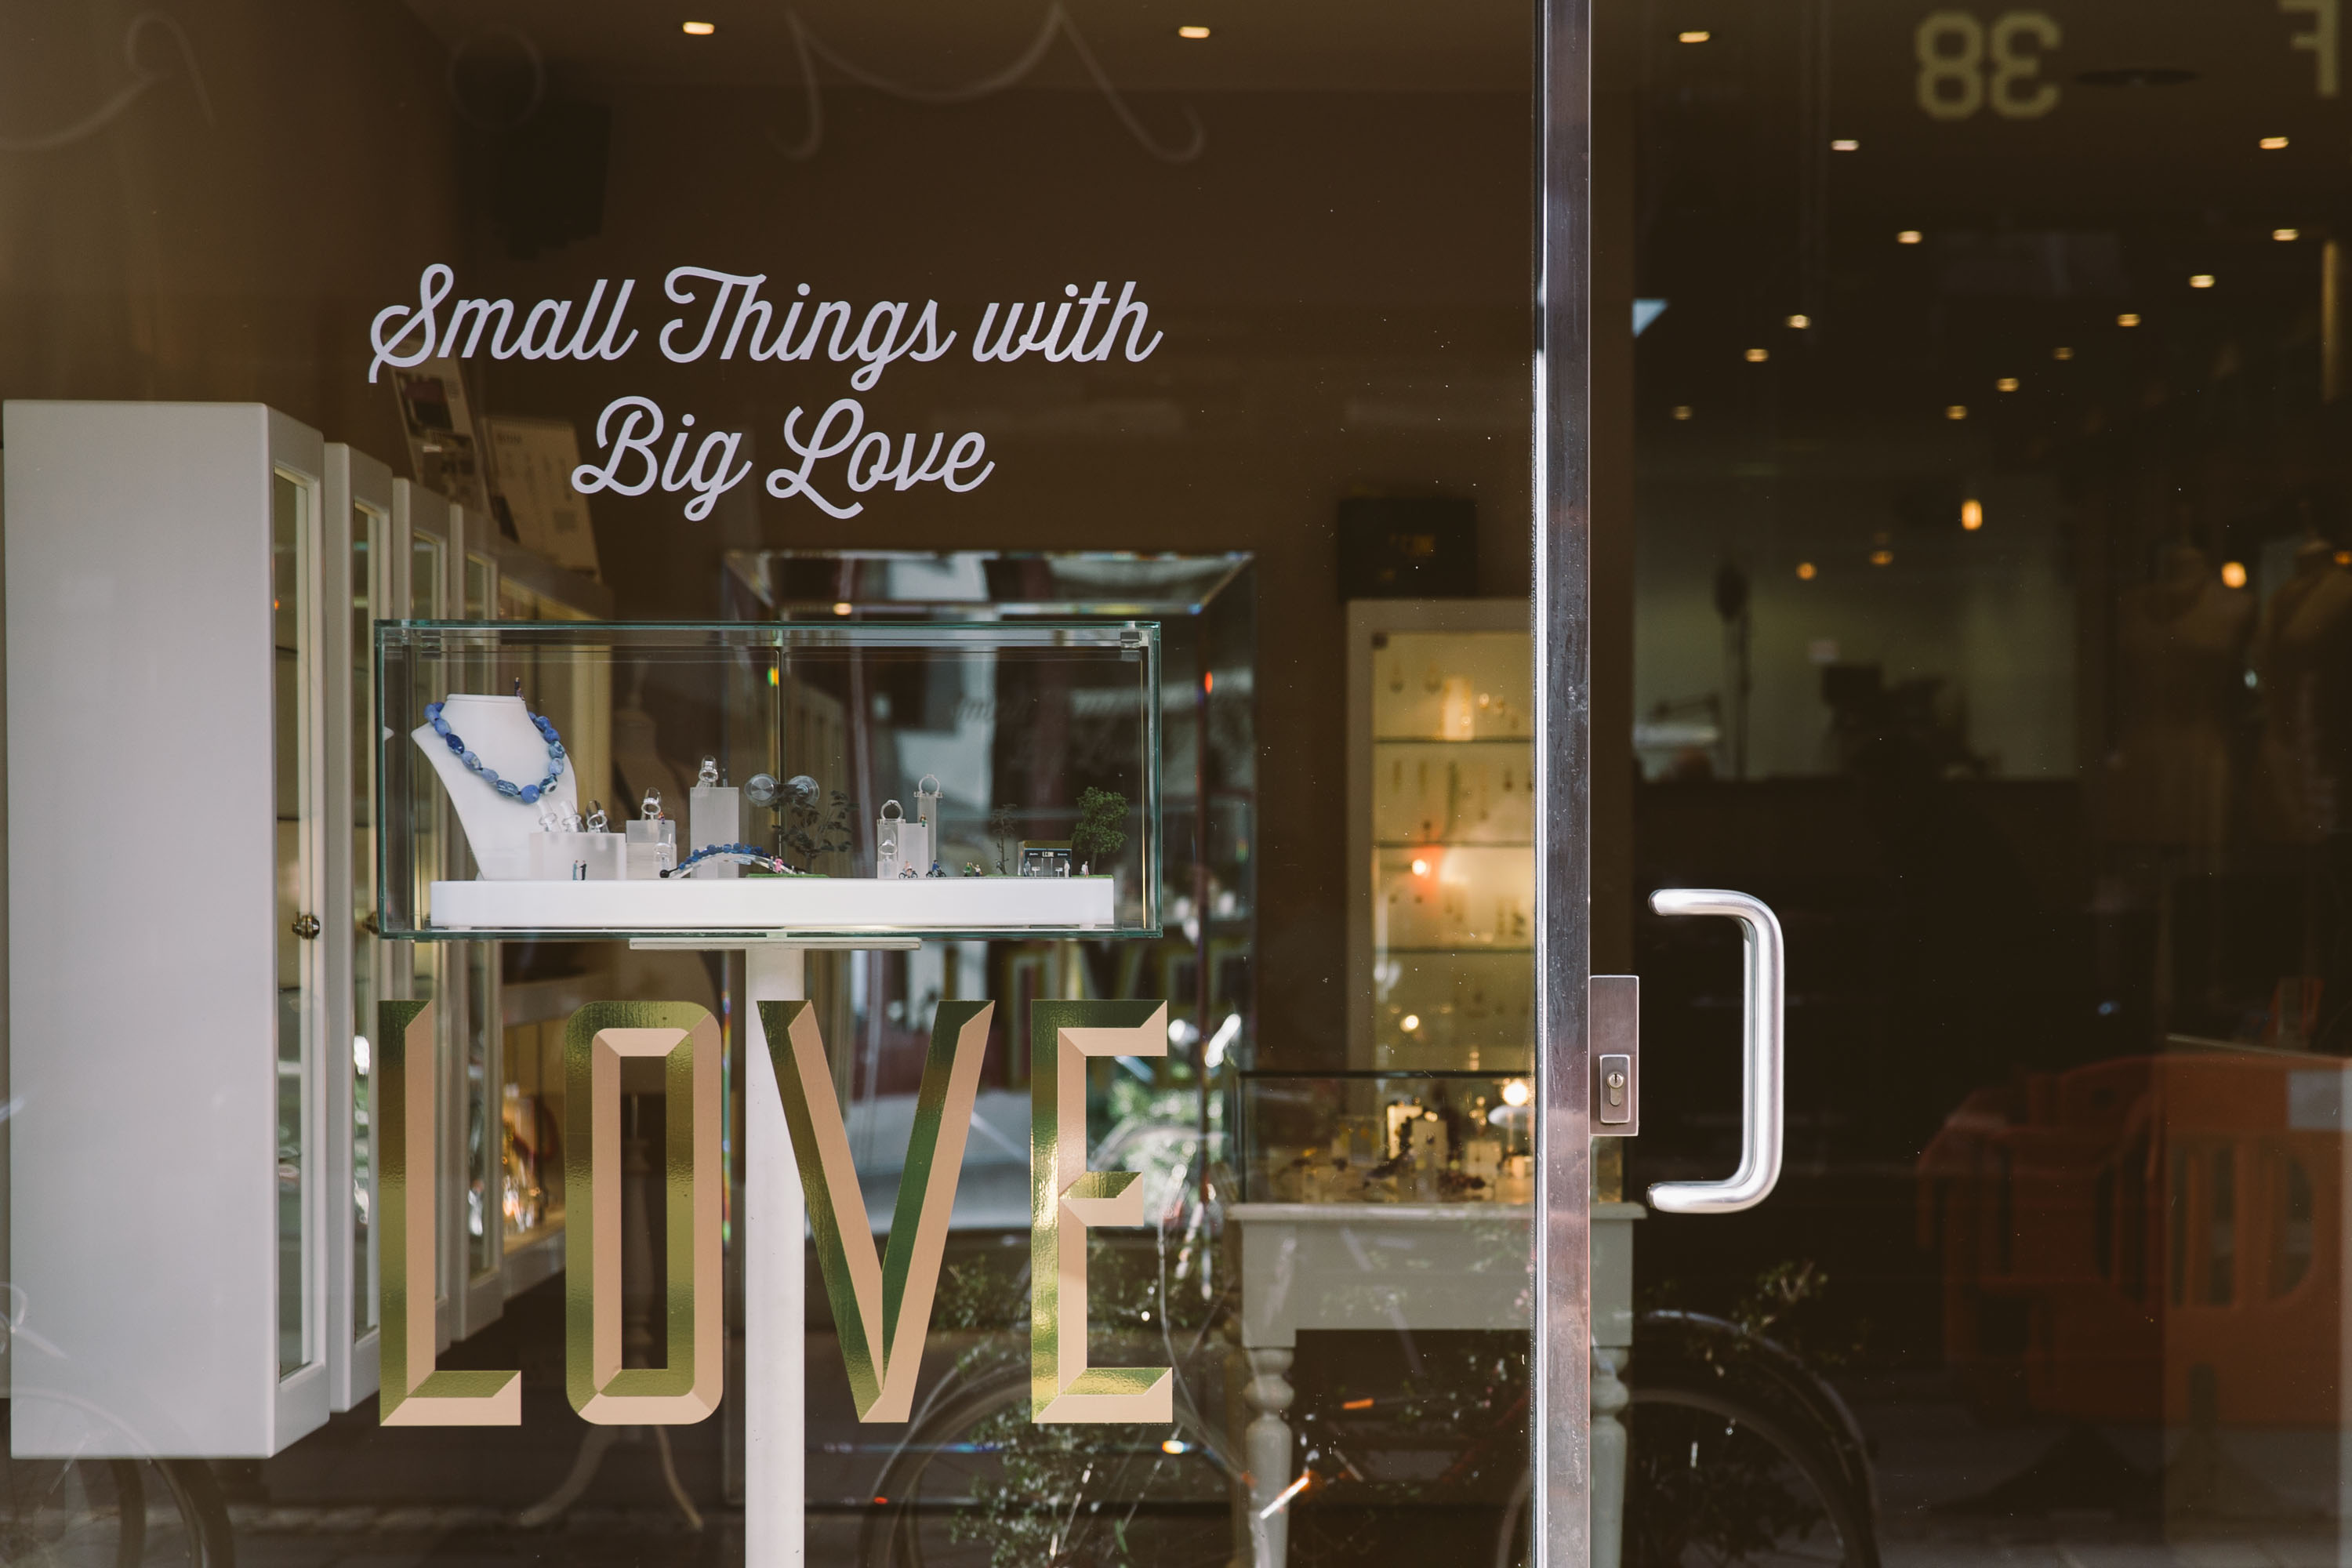 Small Things with Big Love